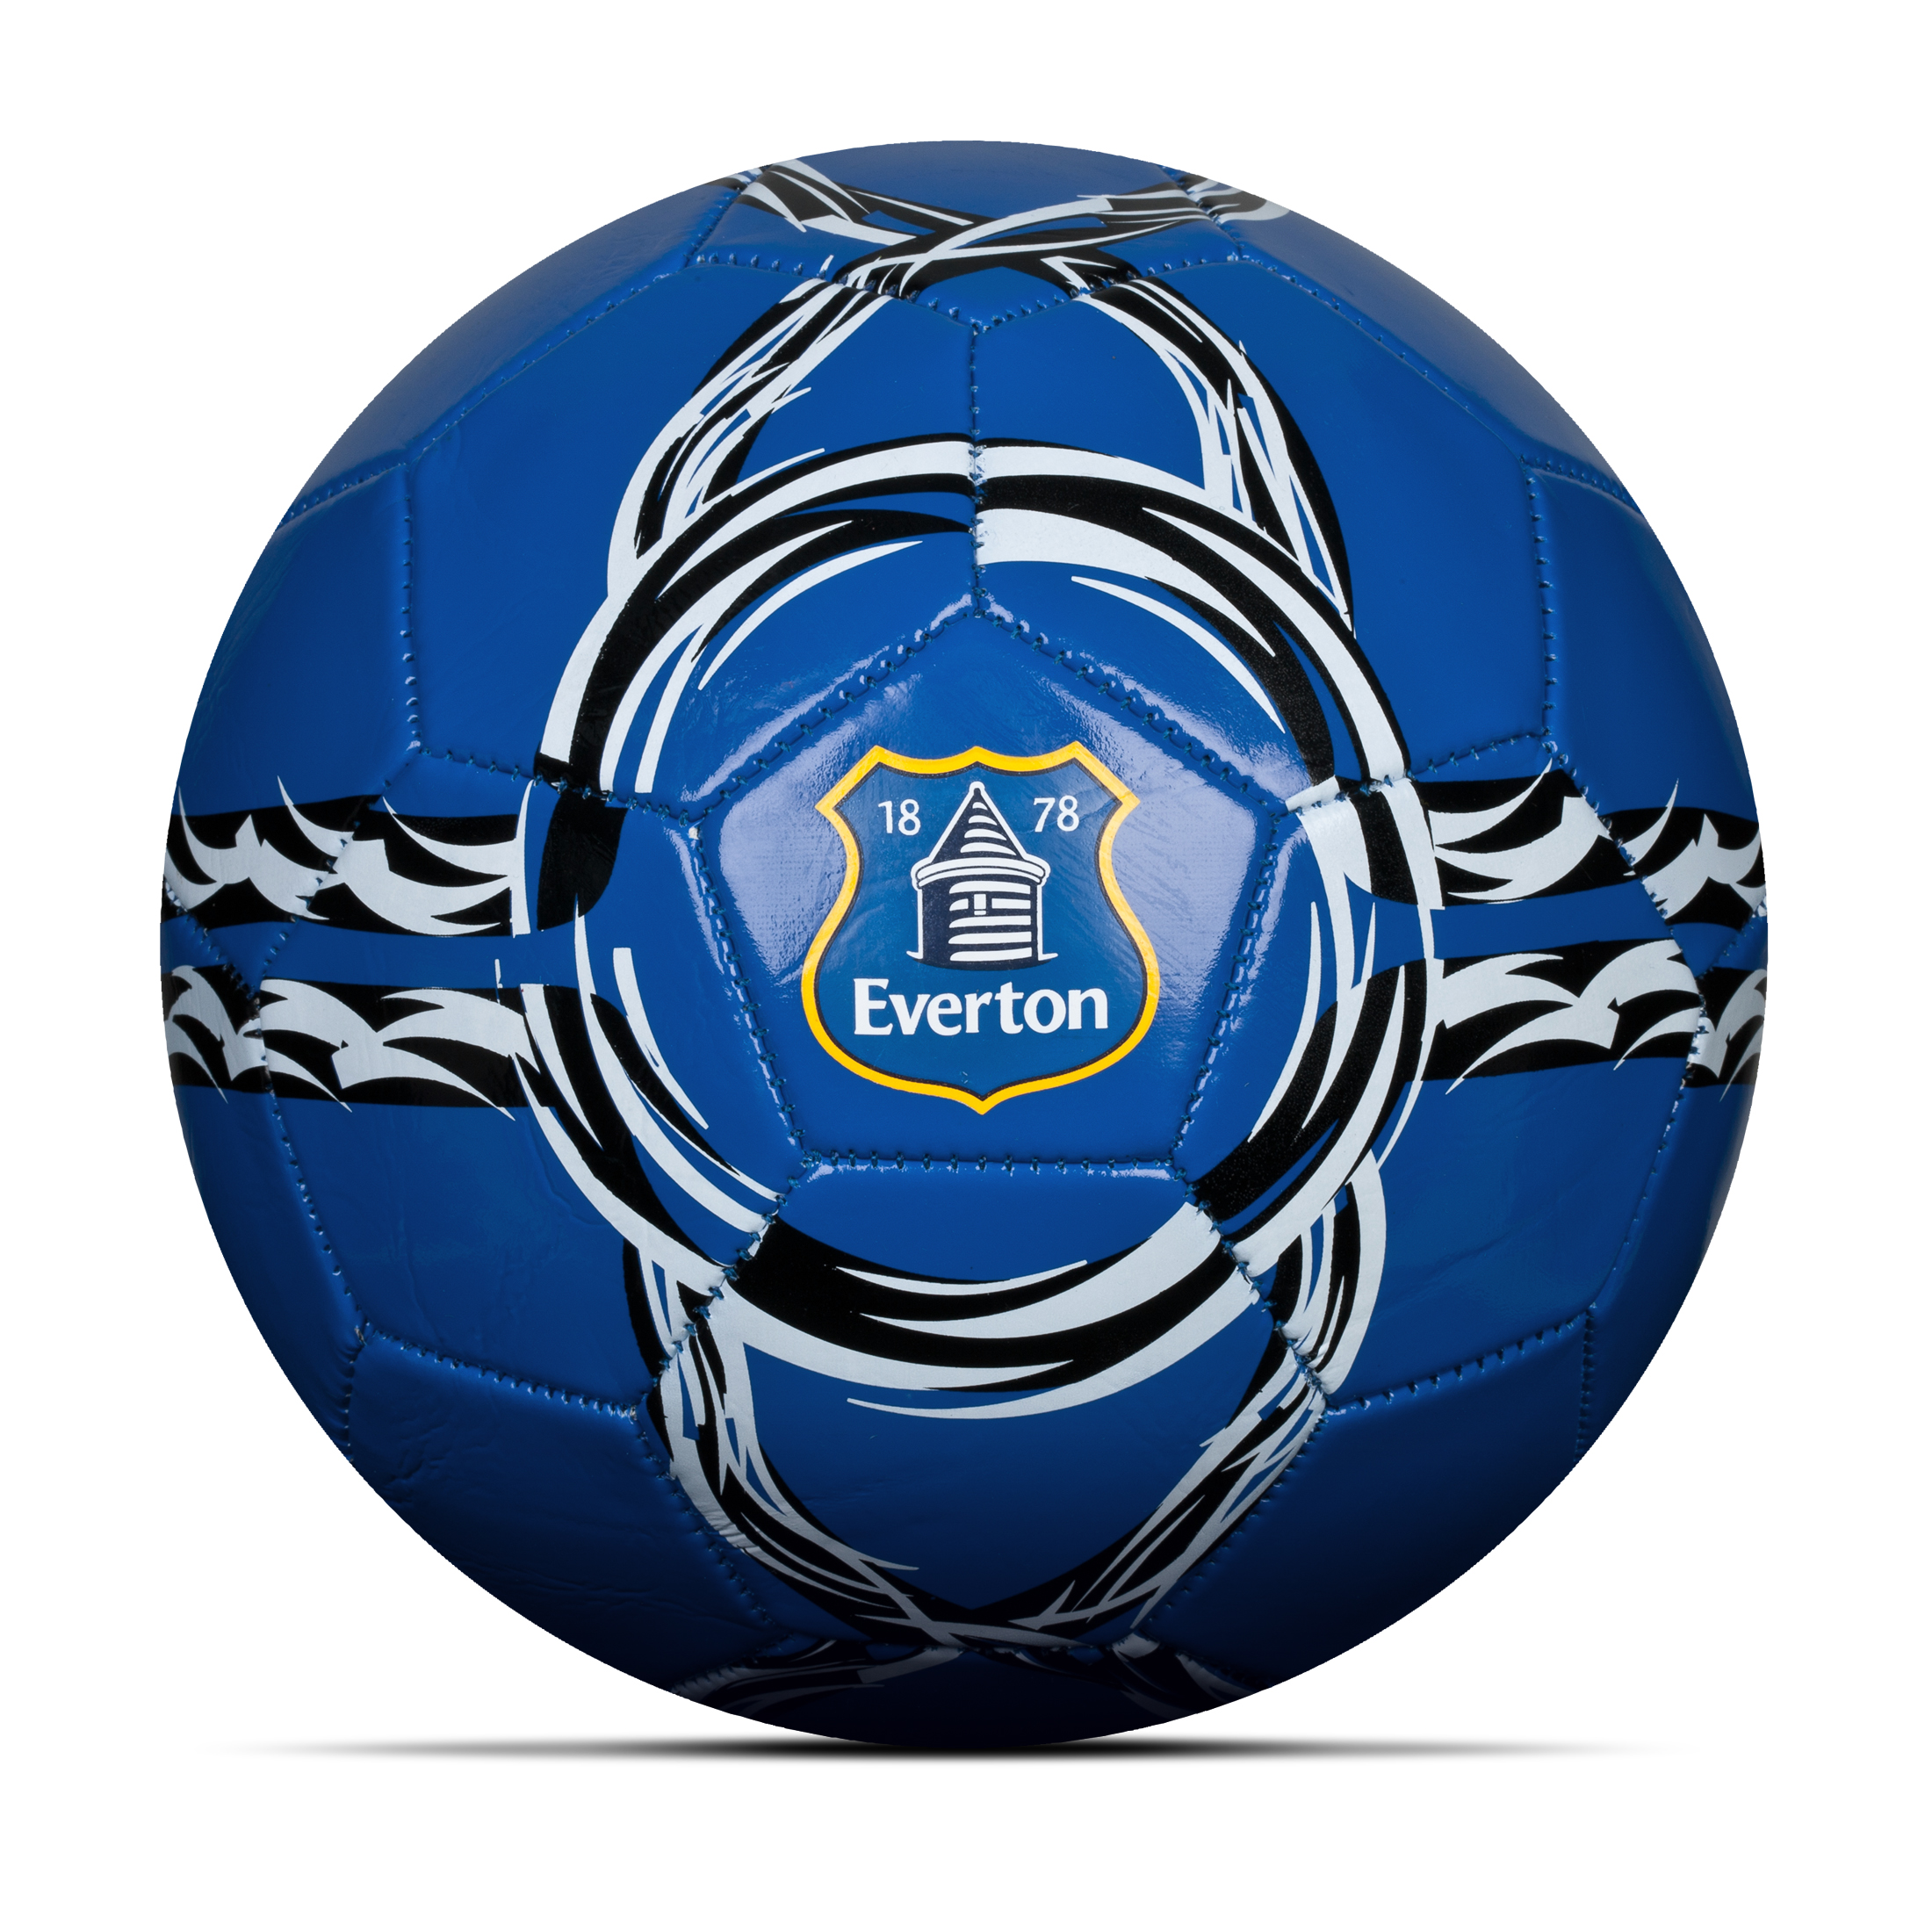 Everton Core Football - Size 5 - Royal